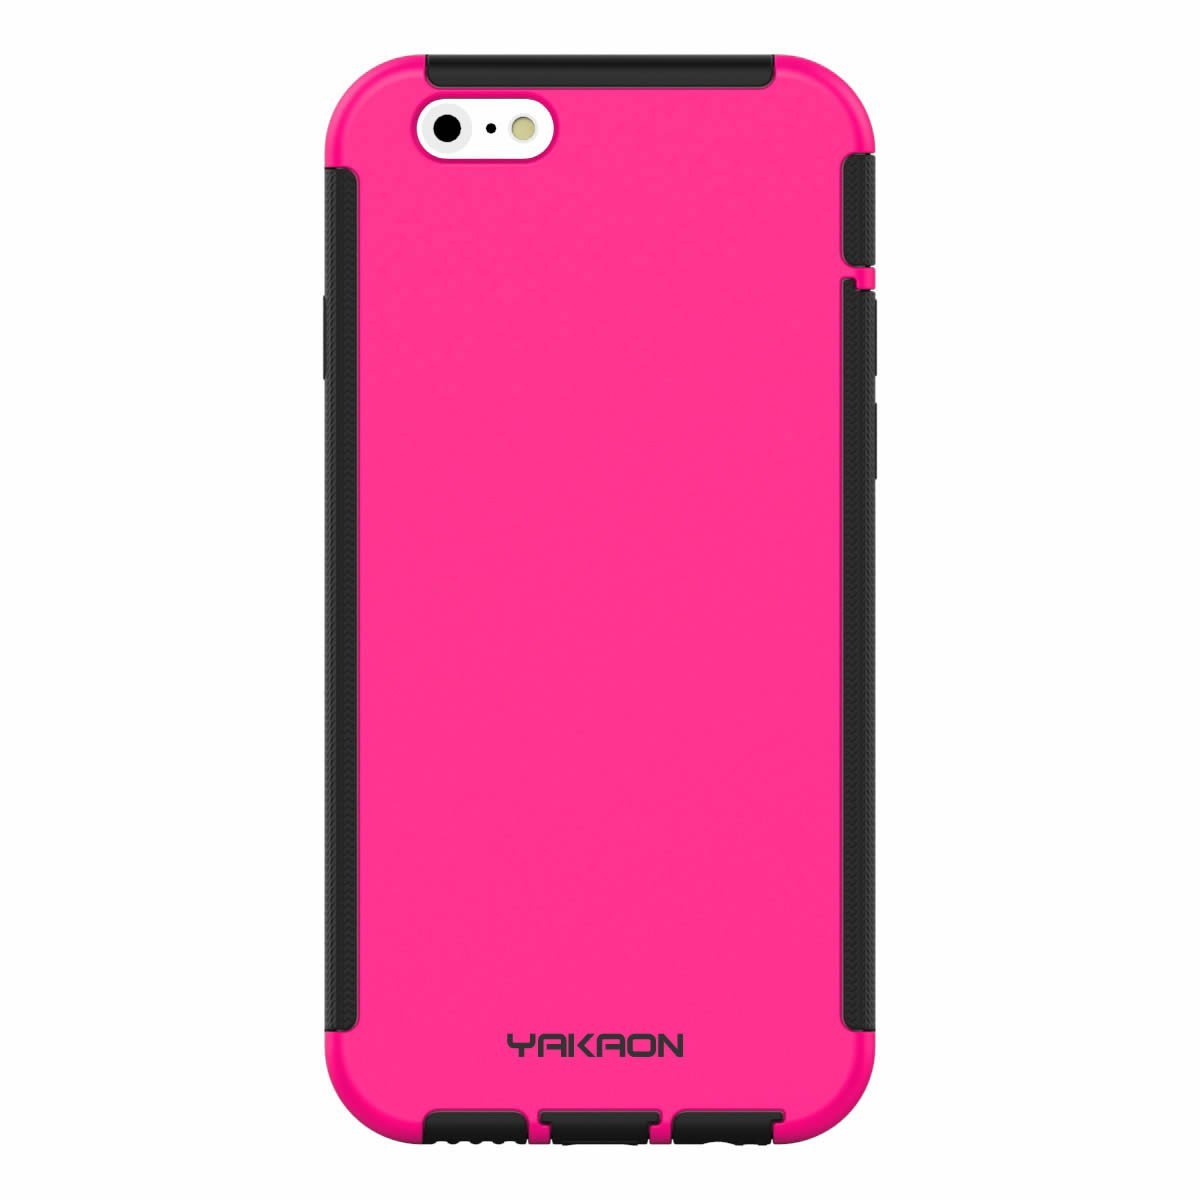 Durable Shatterproof, Dustproof, Shockproof Protective Case for iPhone 5S rose red